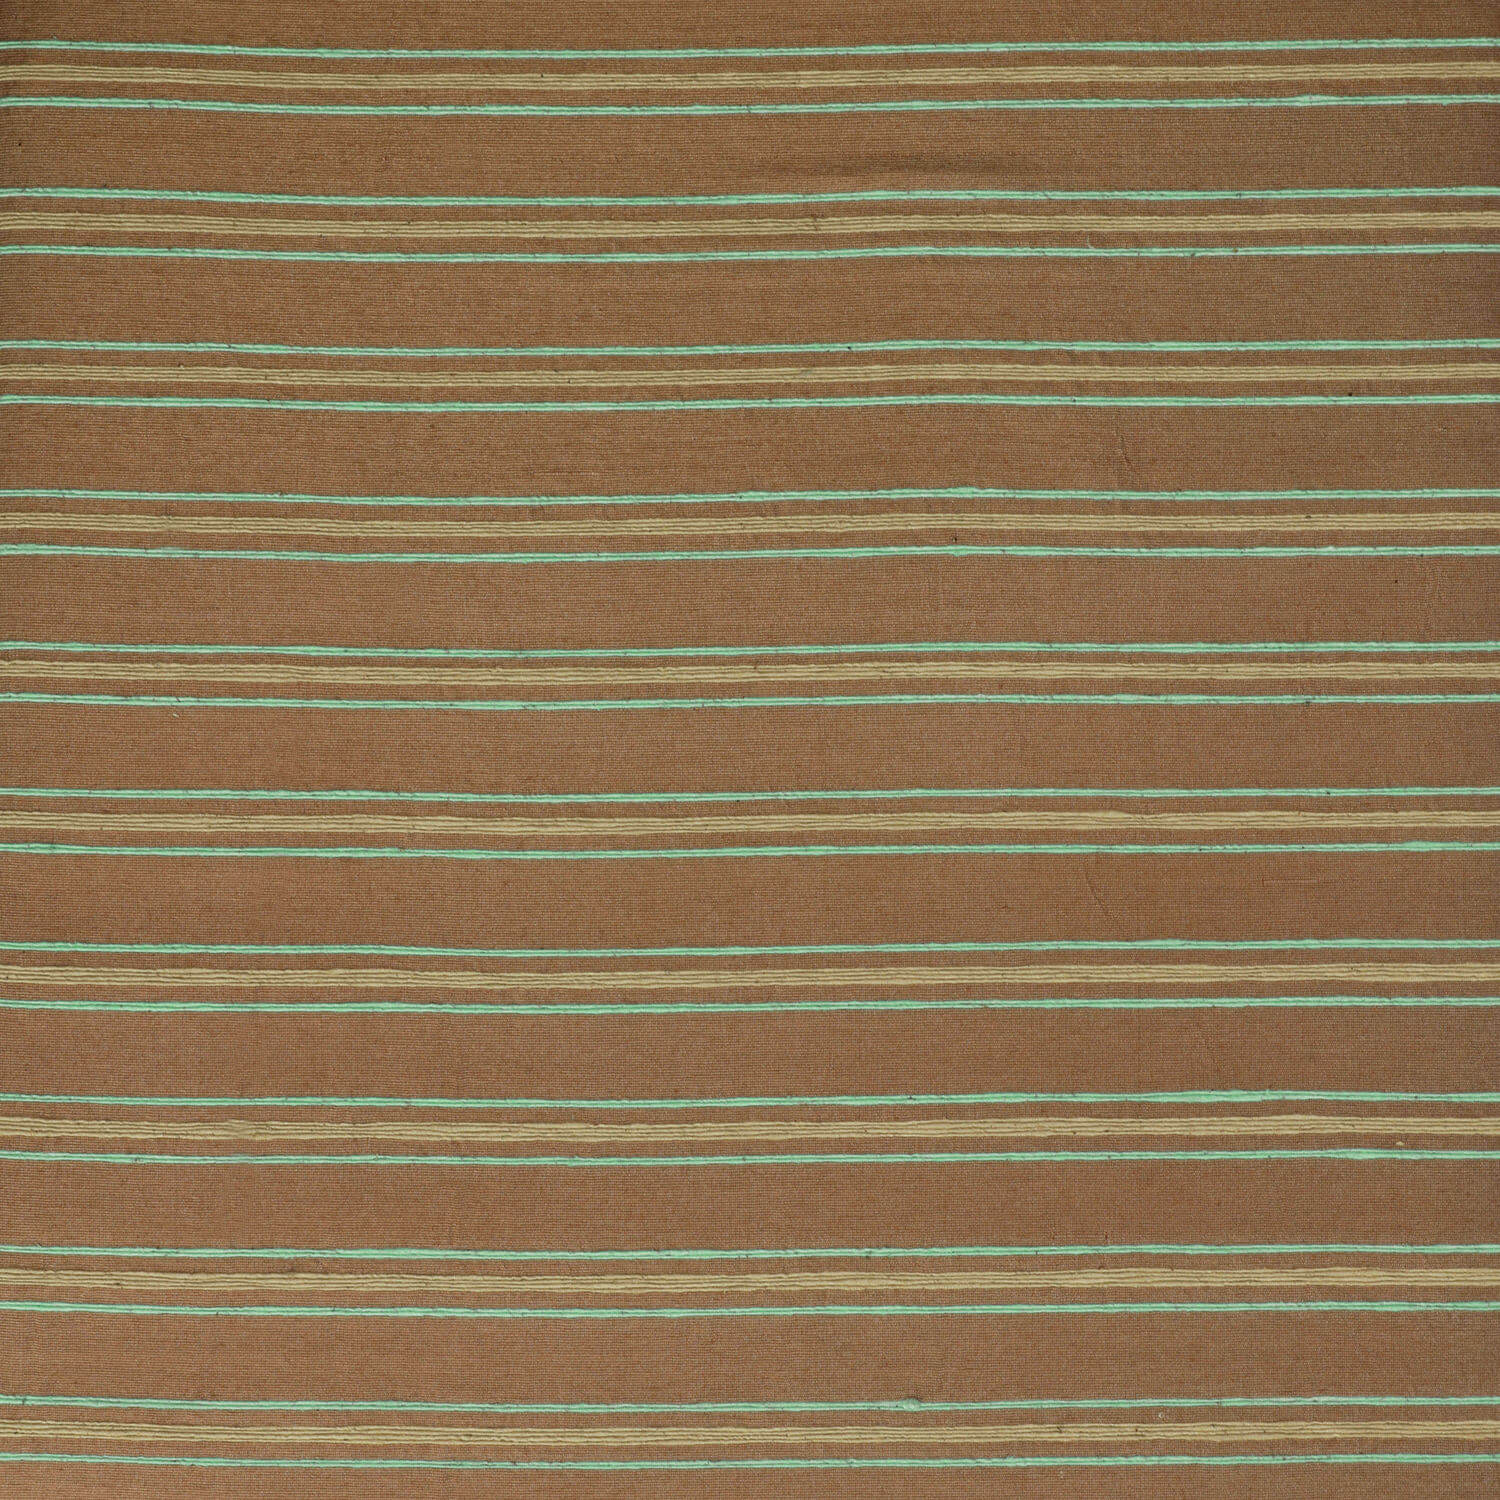 Mocha & Teal Casual Cotton Swatch